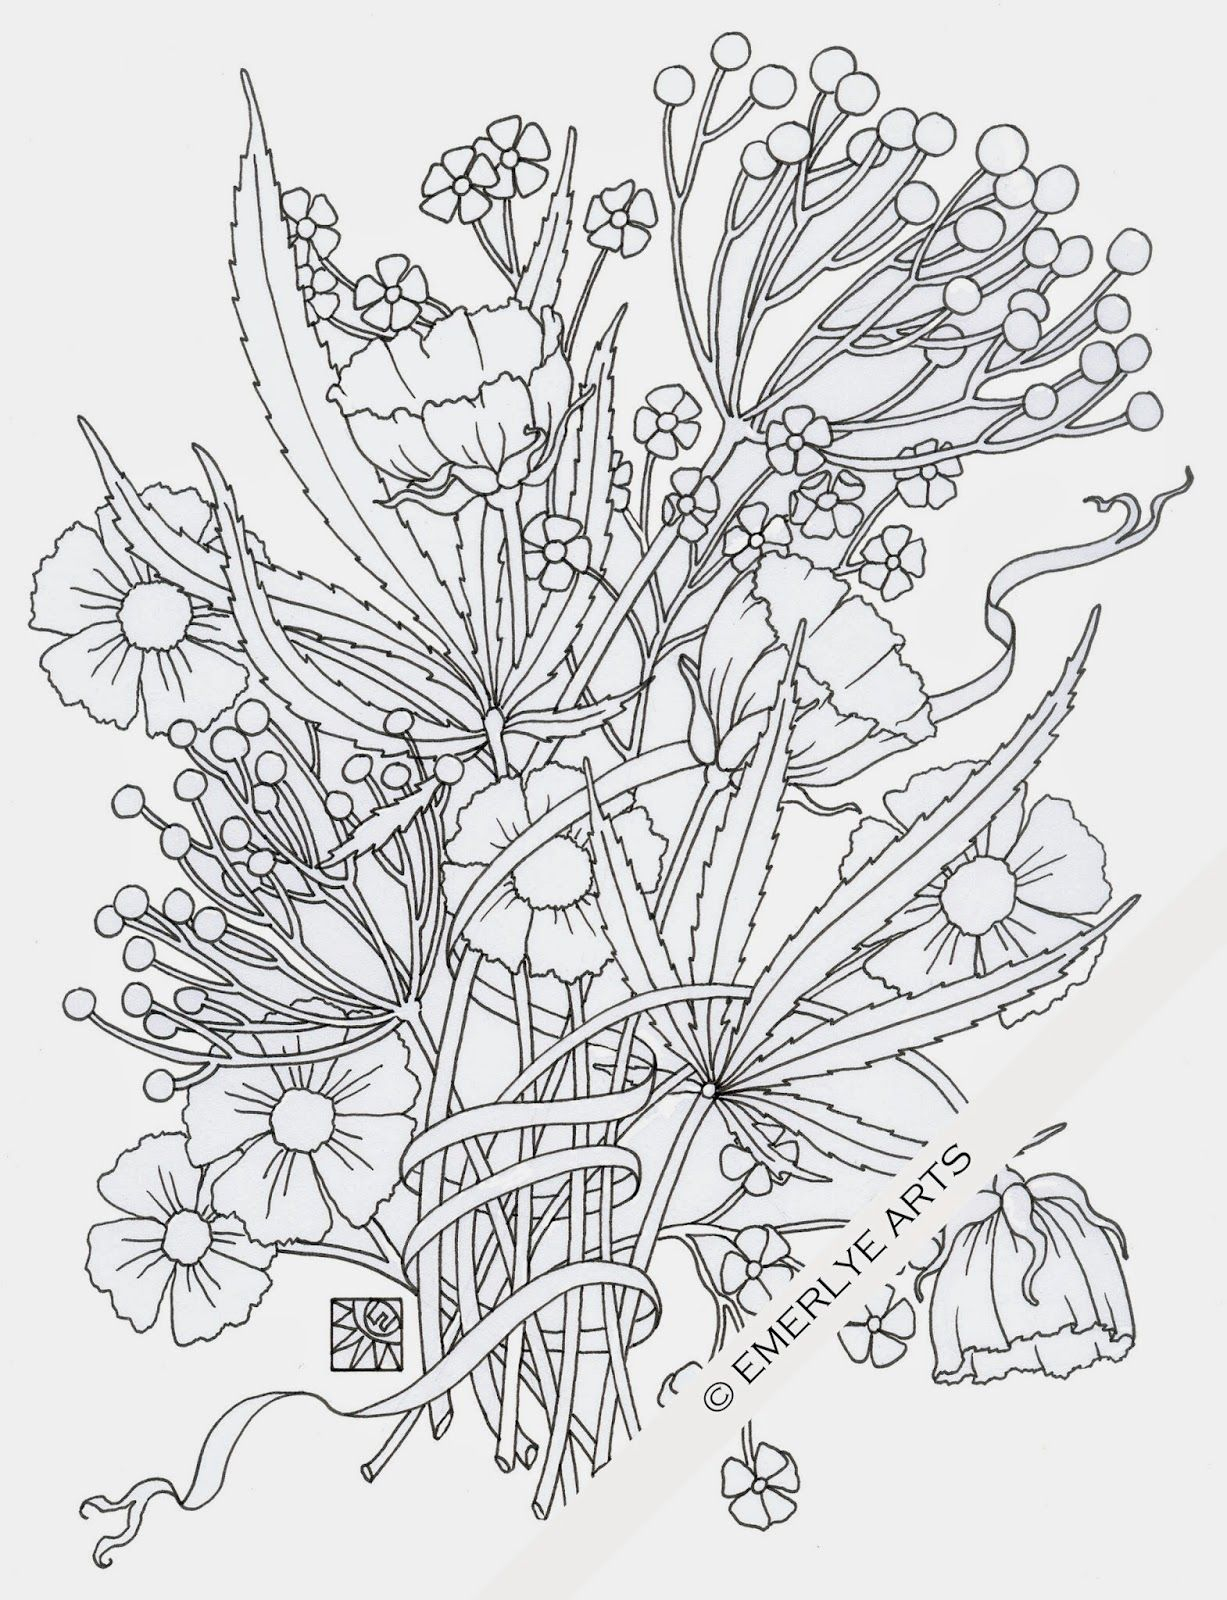 """""""Weedy Friends"""" - an adult coloring page in honor of 4-20 ..."""